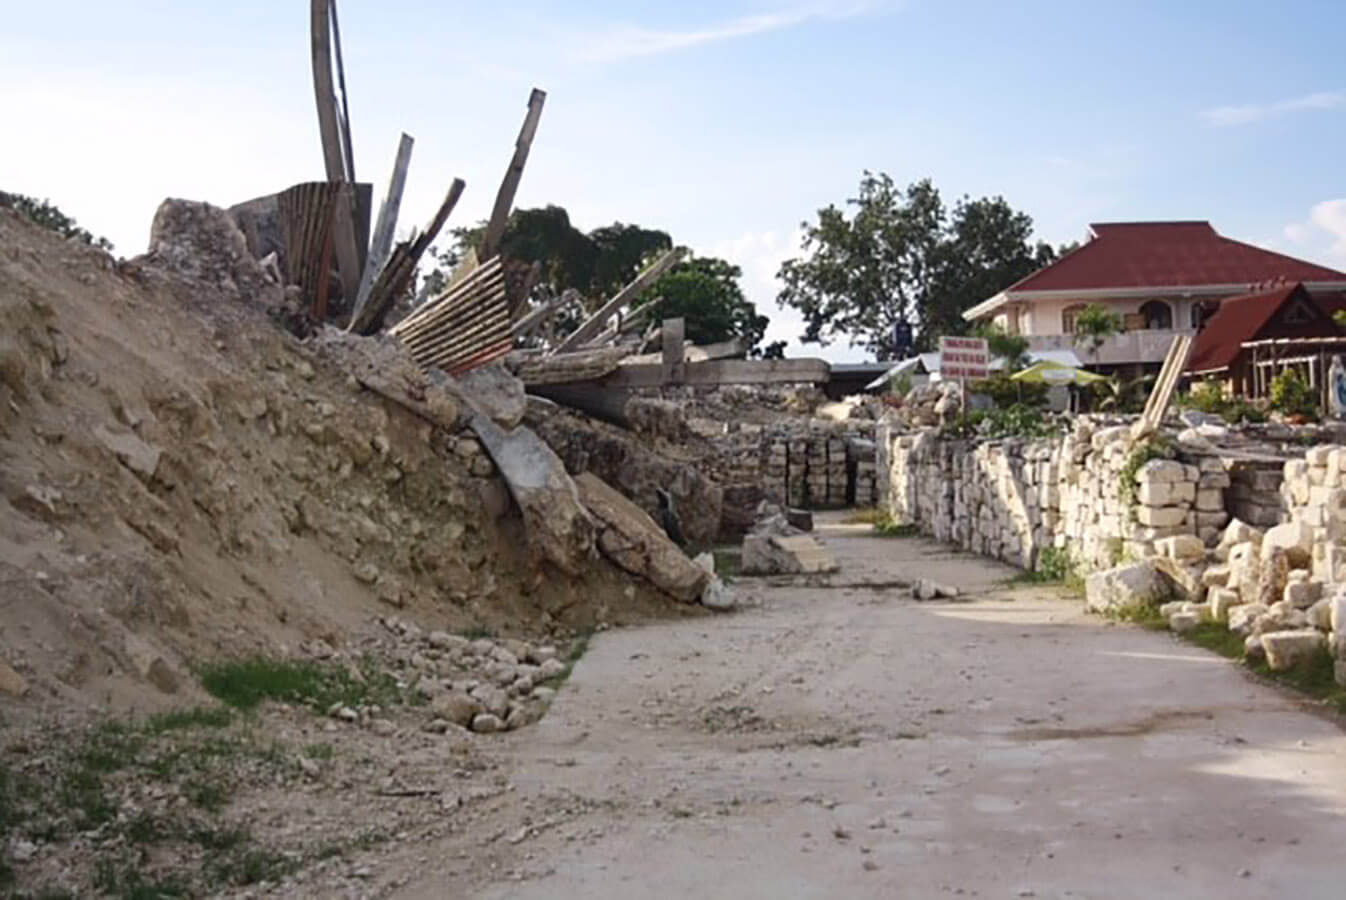 Destruction following the 2013 earthquake in the Philippines was extreme